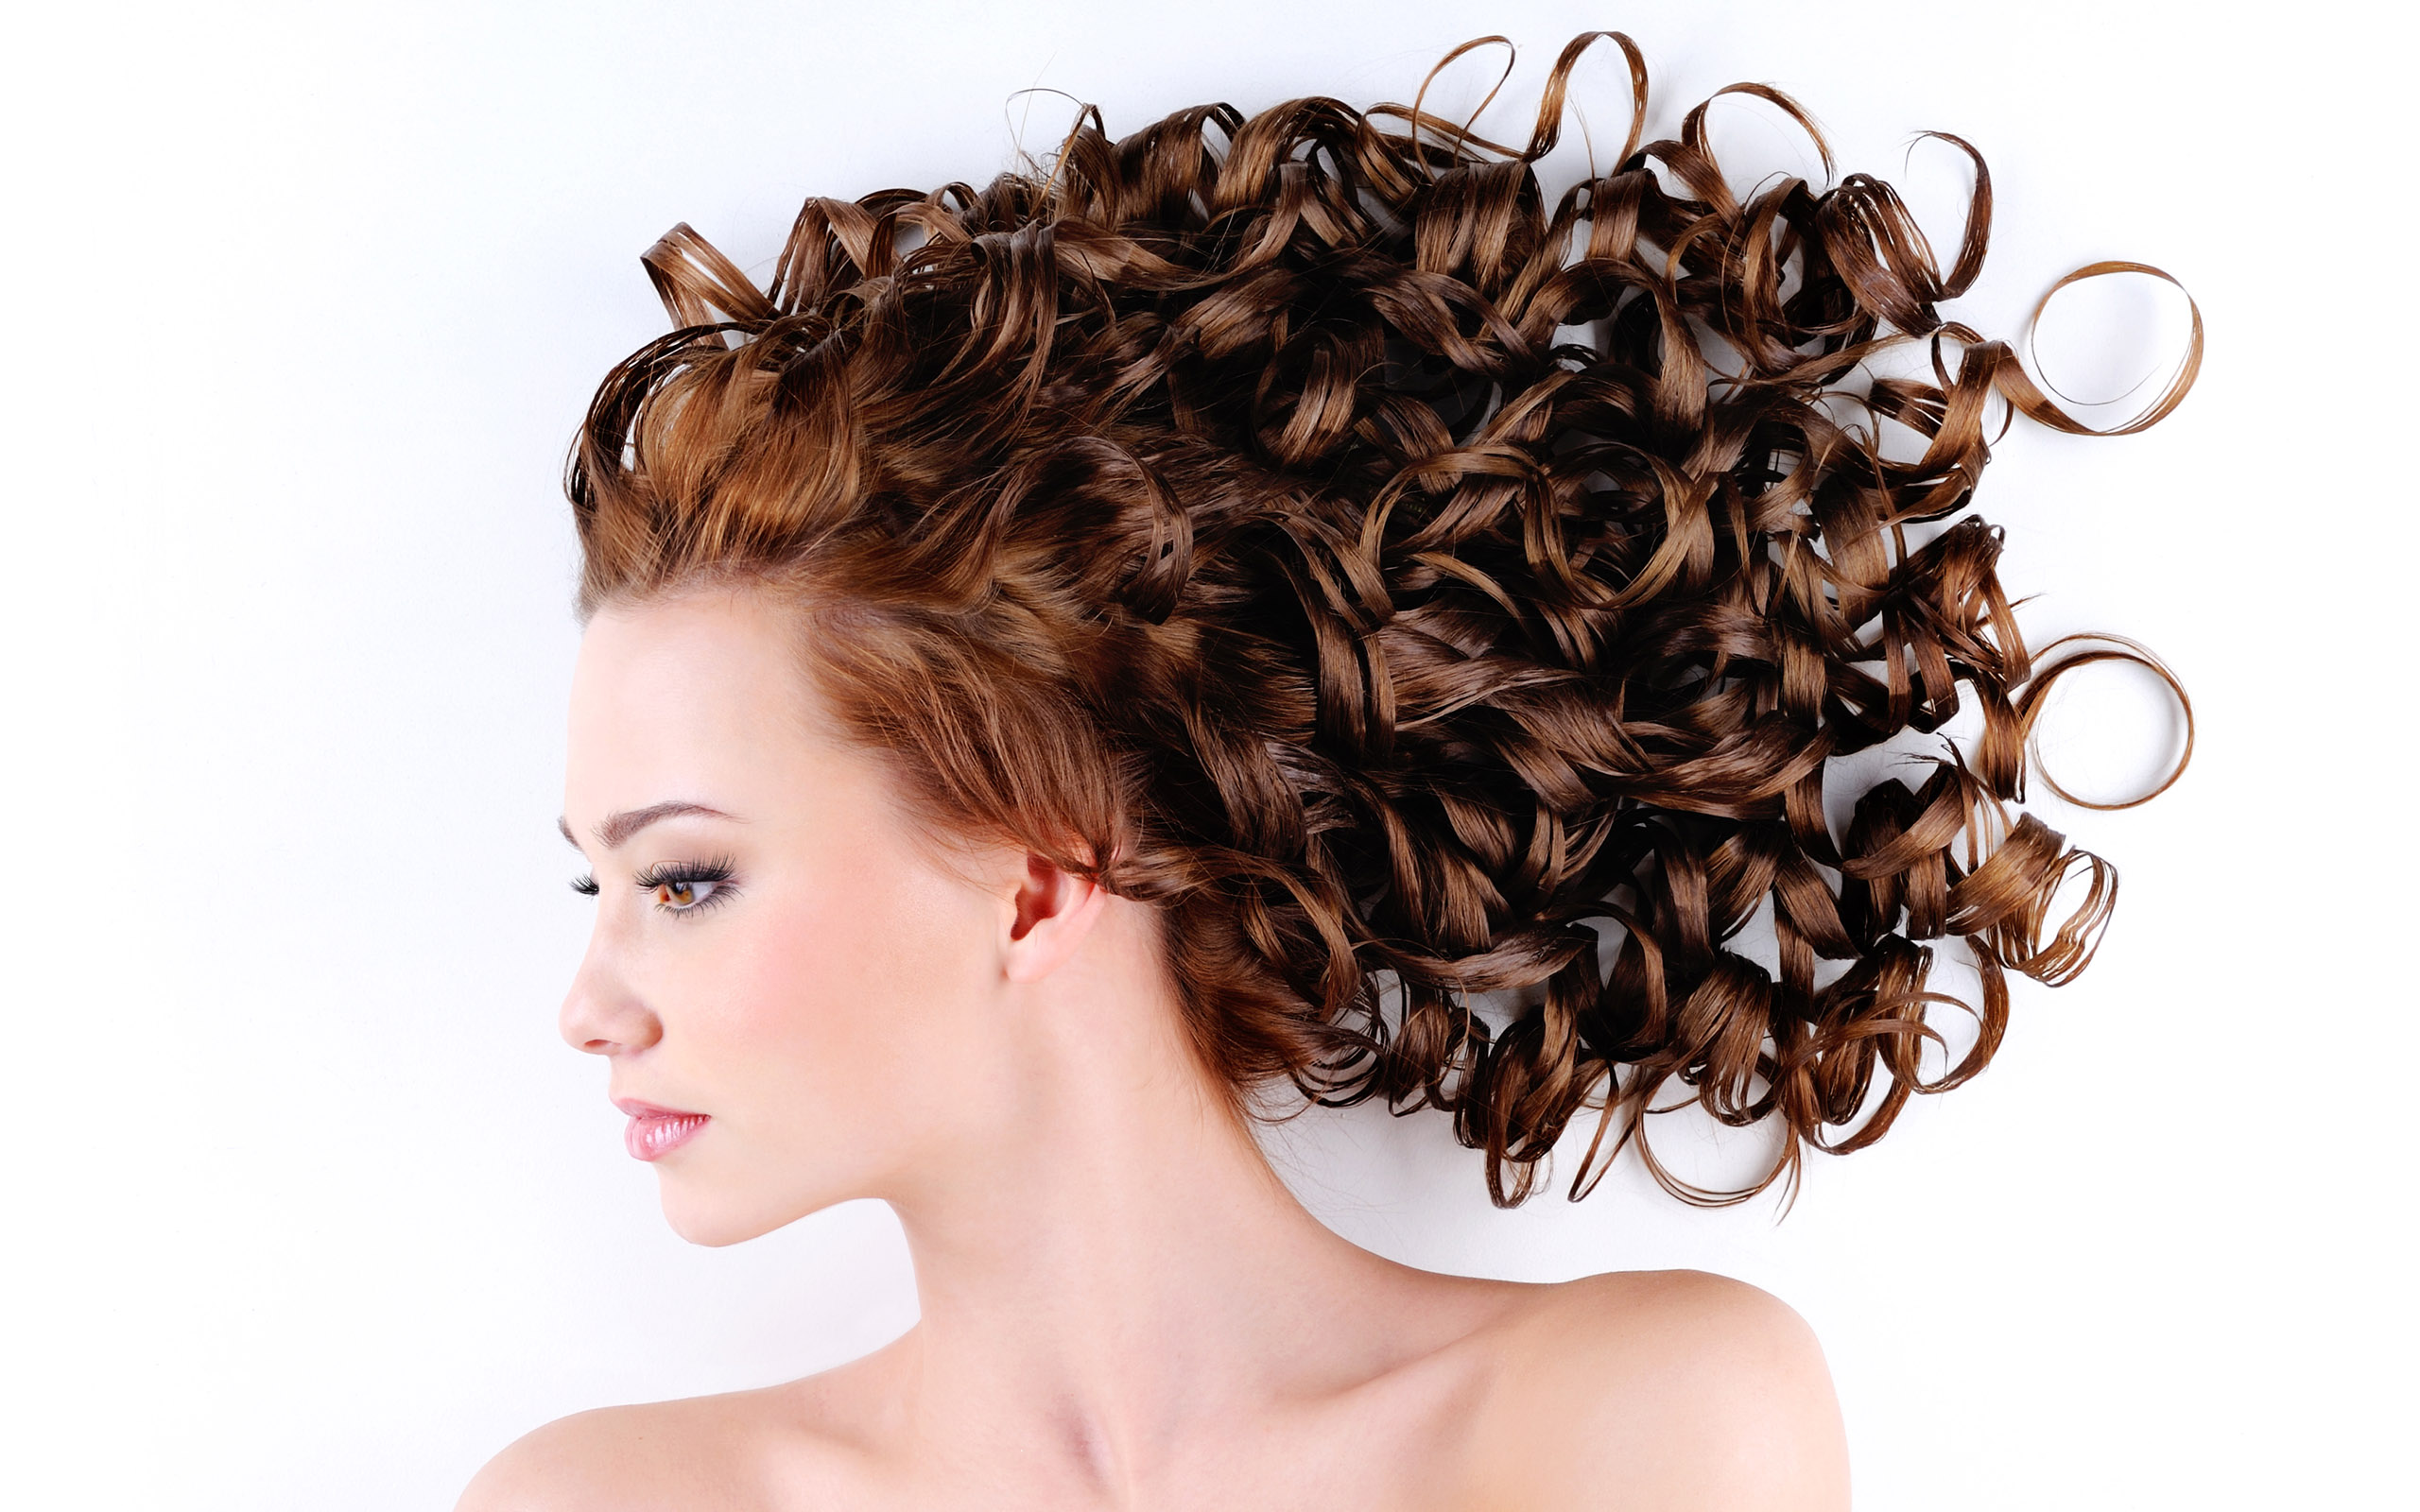 Salon Hair Cut Styles: New Heaven, CT, Hair Salon